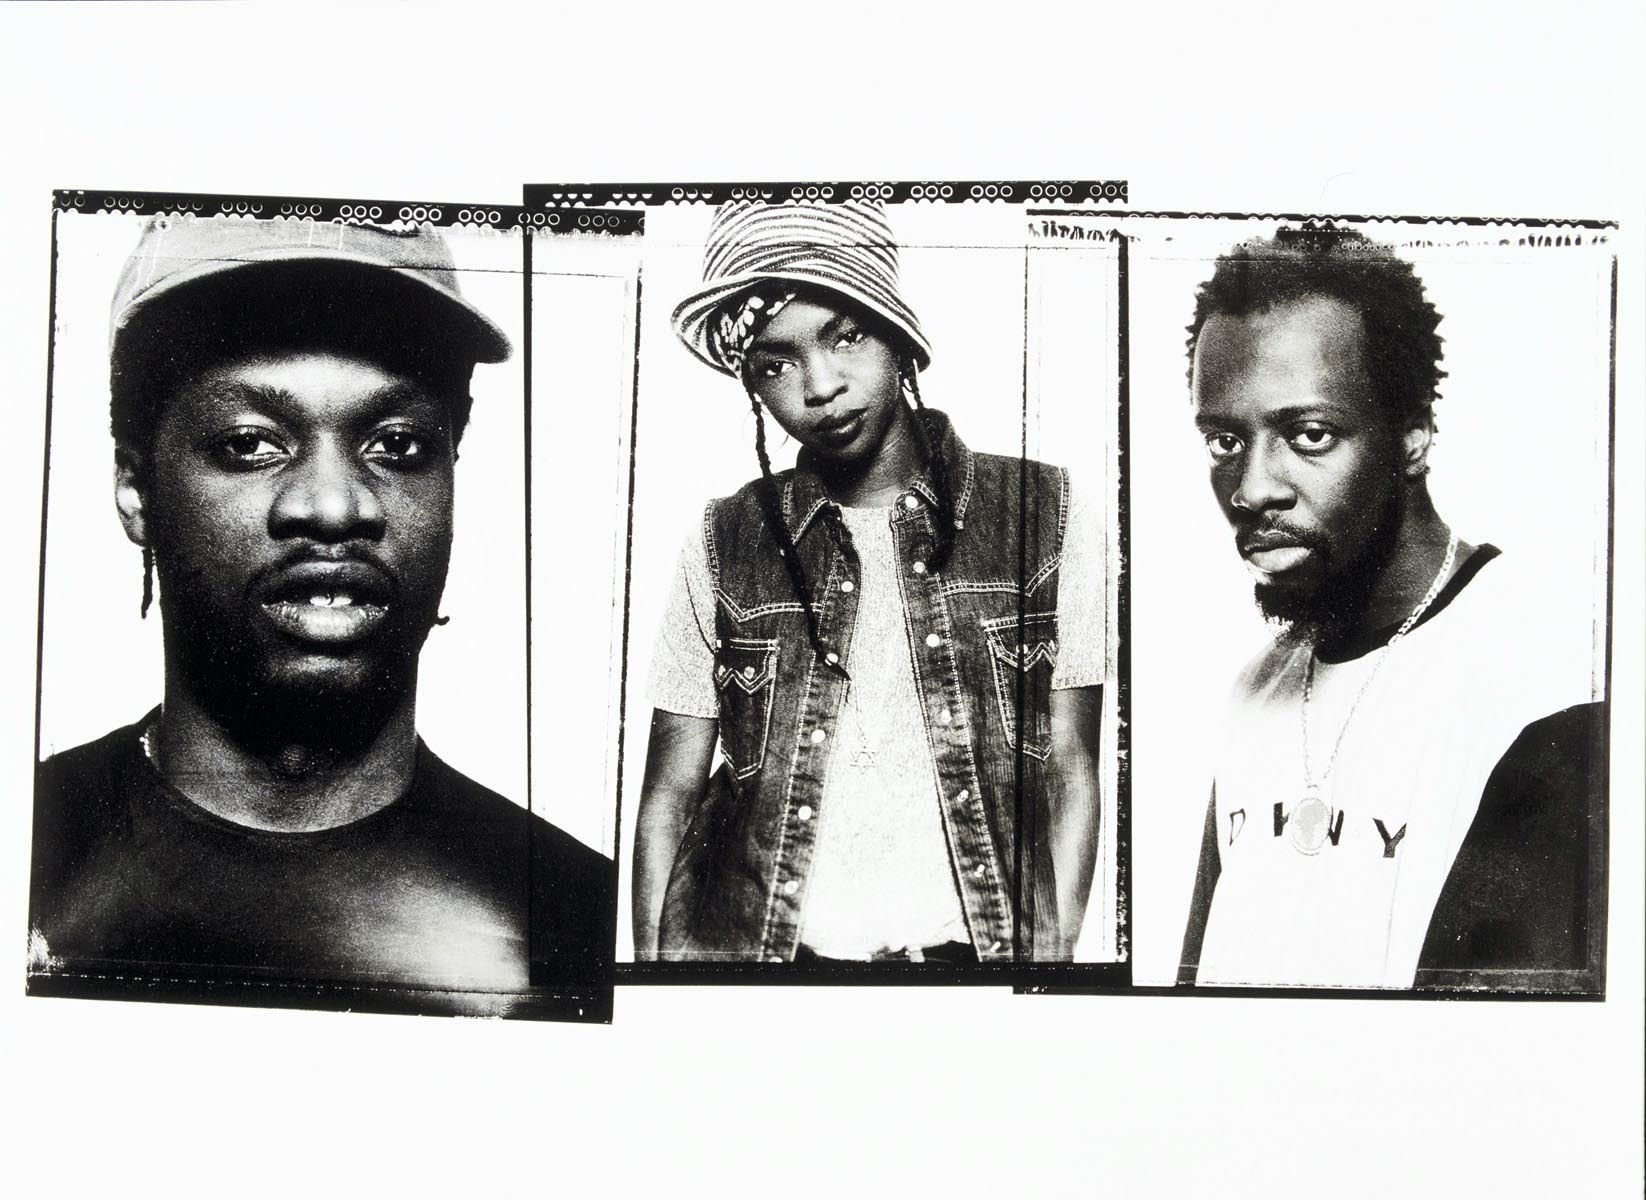 Portrait of Wyclef Jean, Pras & Lauryn Hill of The Fugees photographed in the mid 1990's.